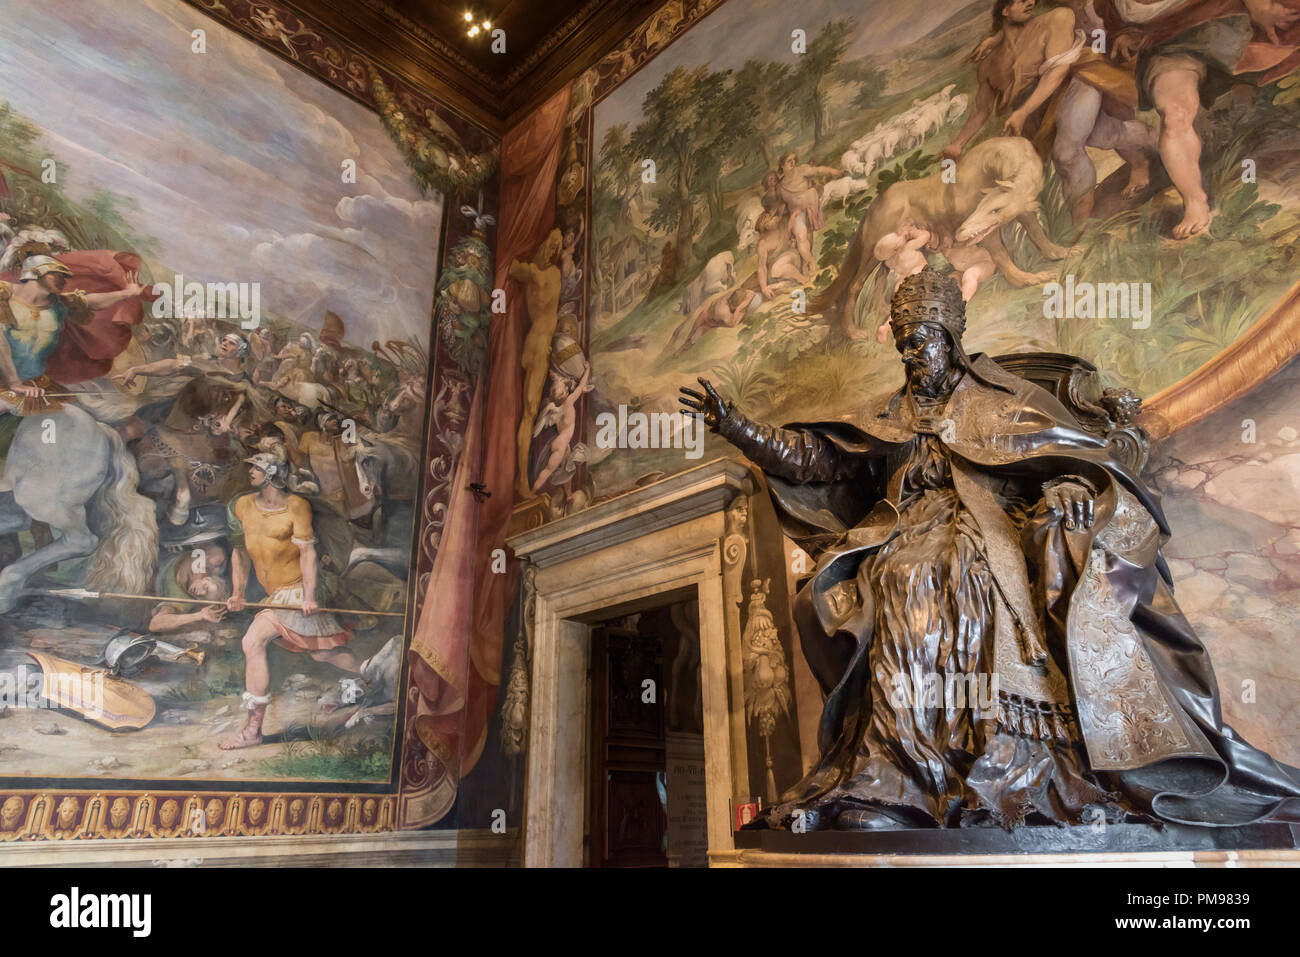 Statue of Pope Innocent X, Capitoline Museums, Rome, Italy - Stock Image